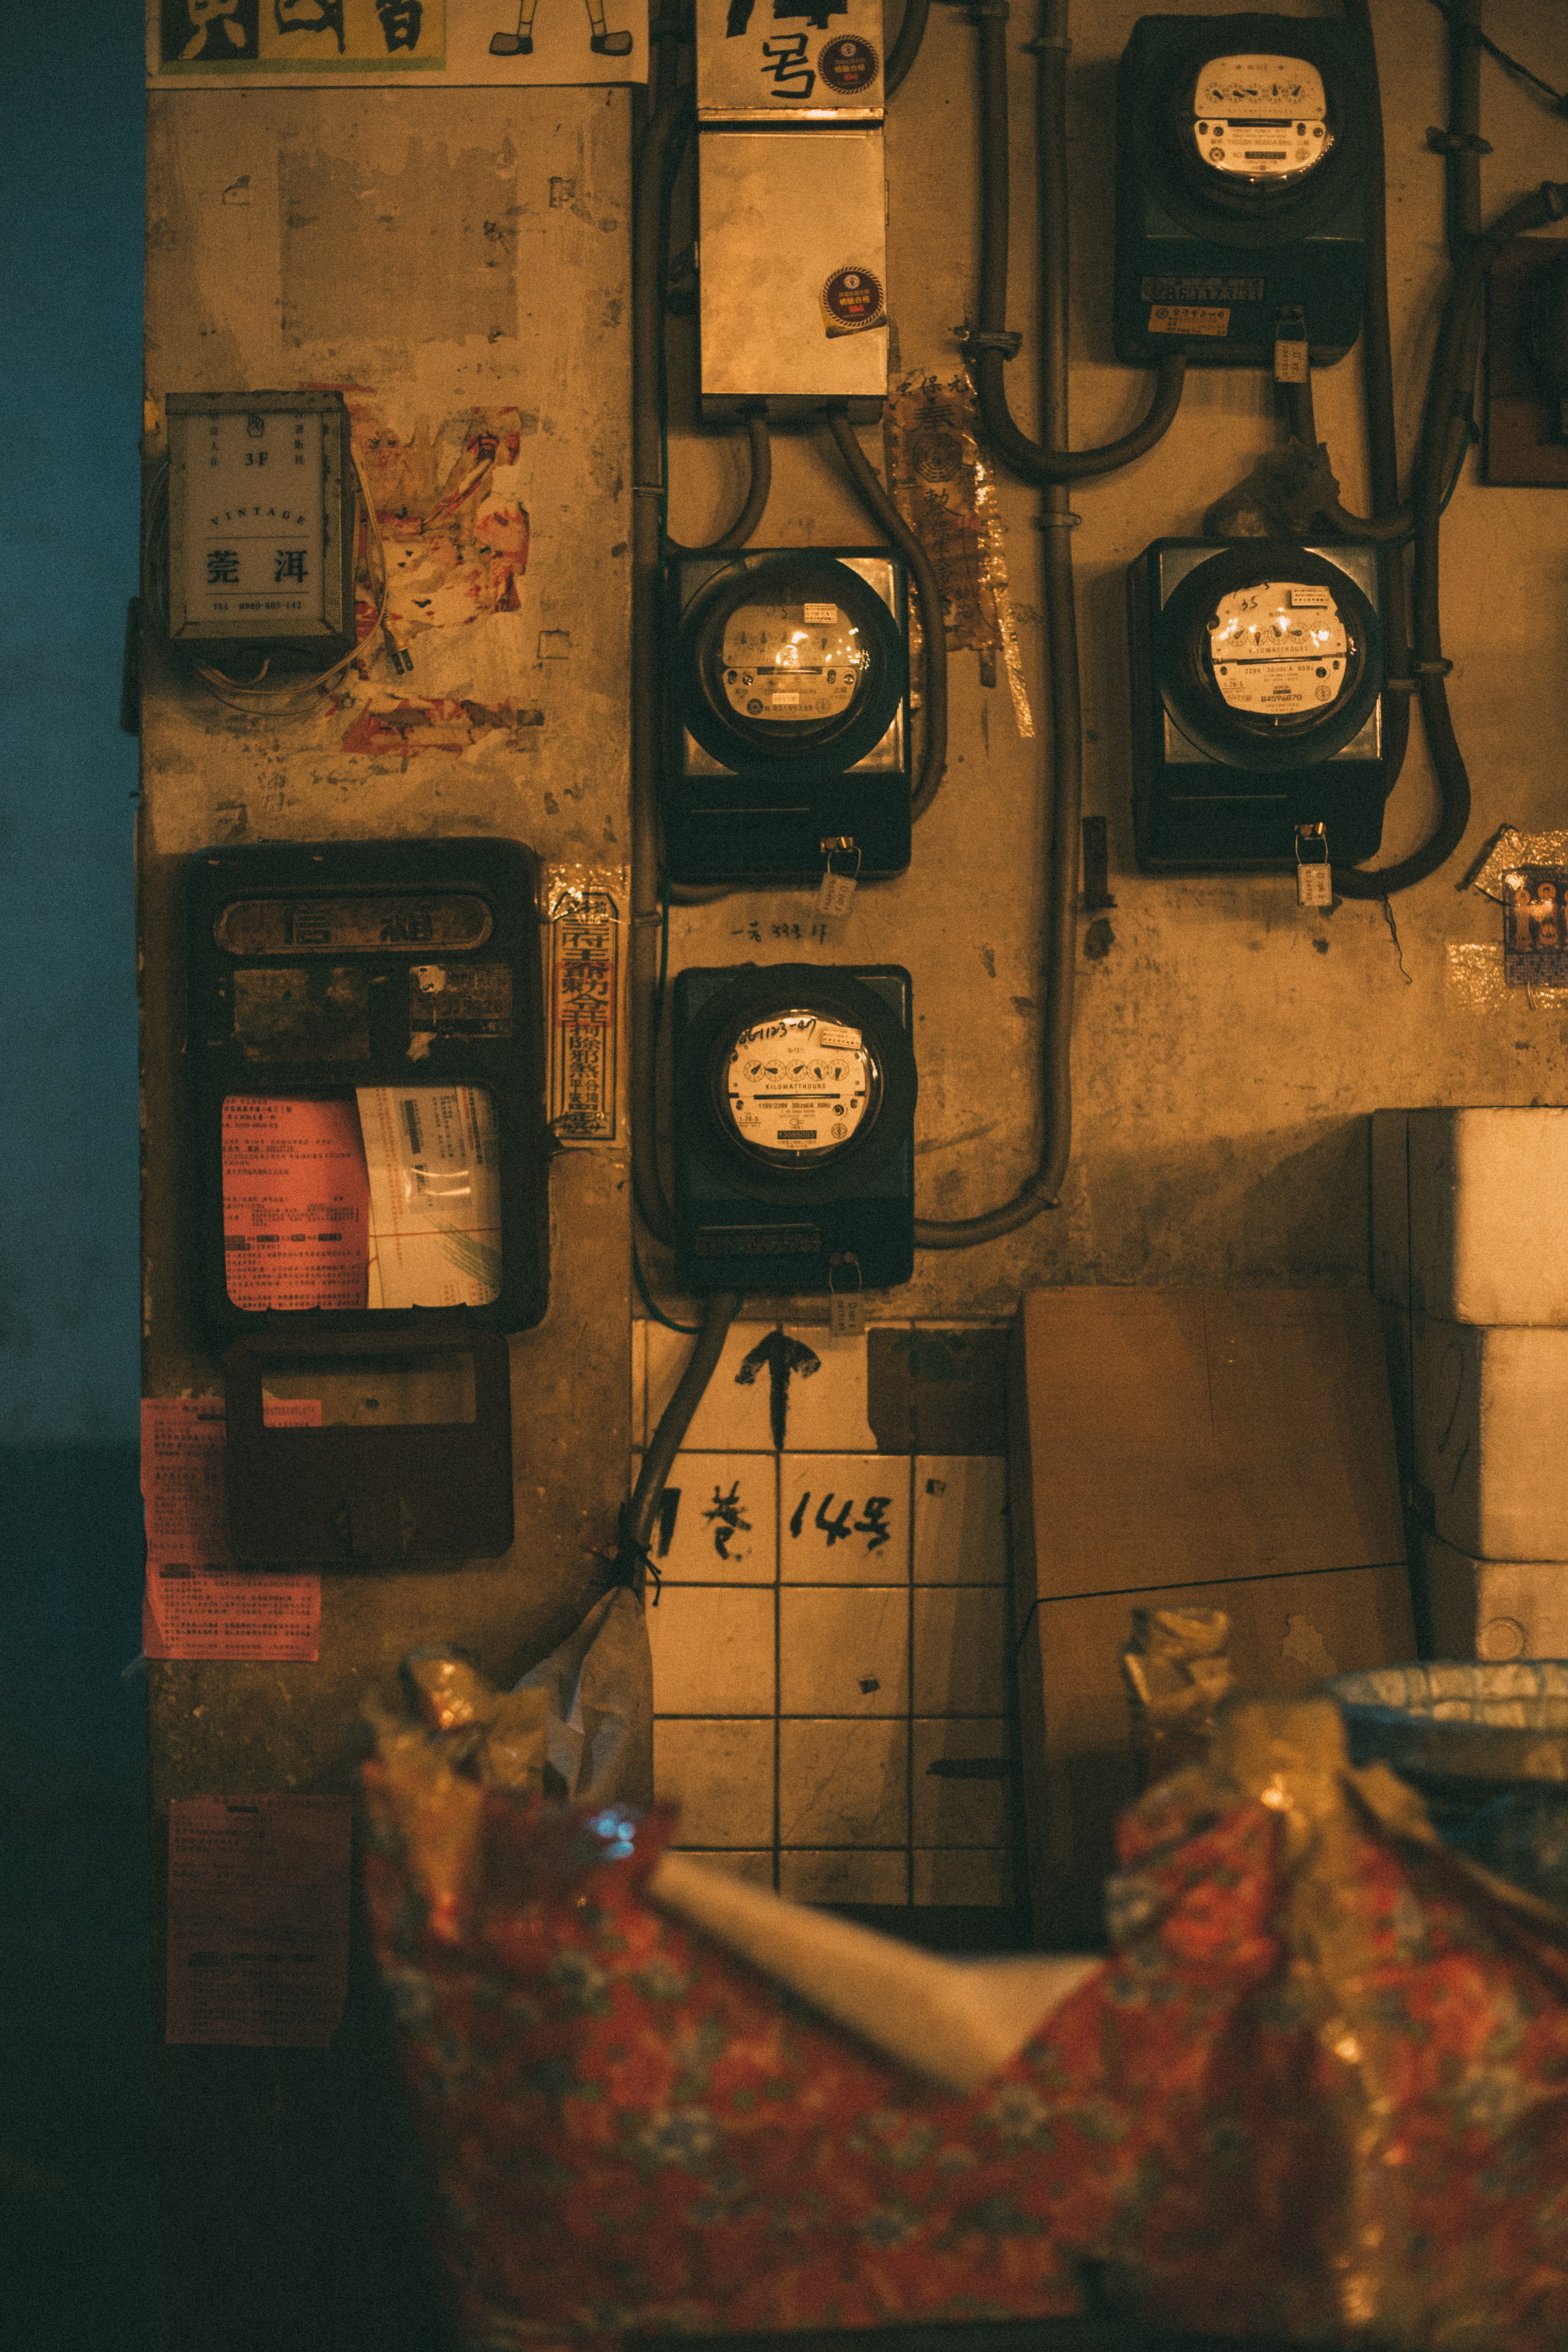 assorted electric meters on wall